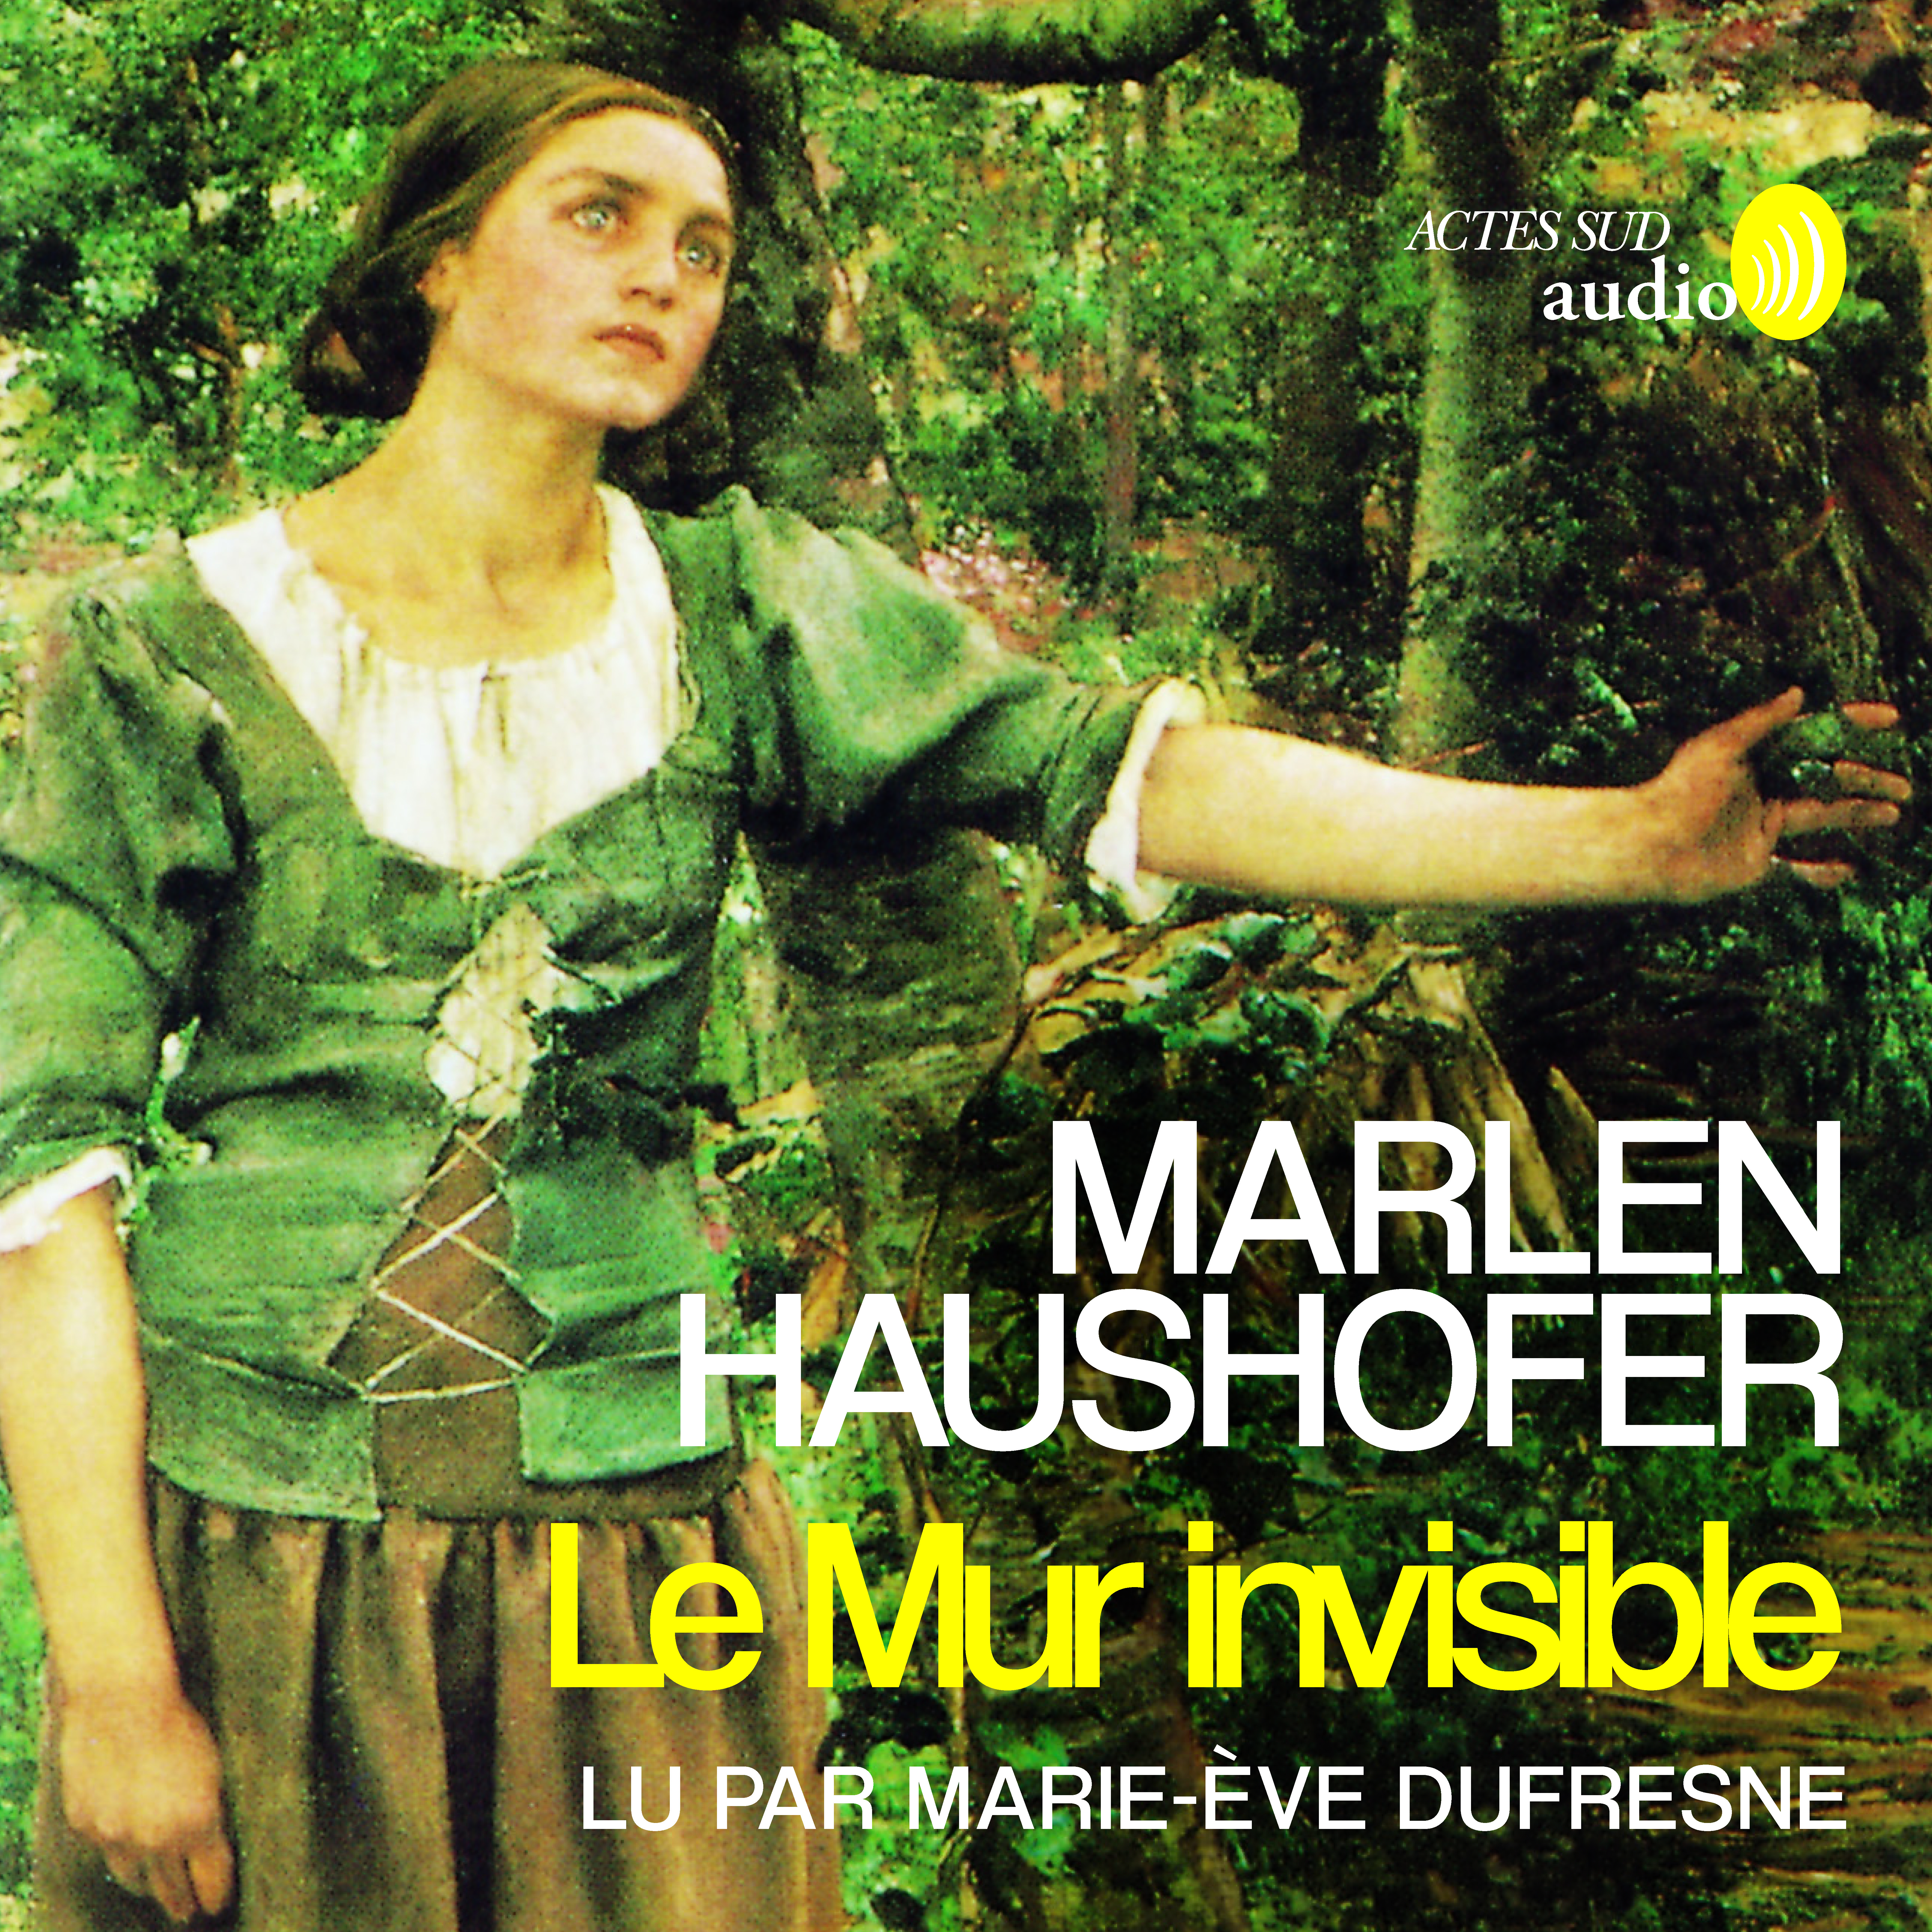 Le mur invisible  CD mp3  (6h30) - Marlen Haushofer